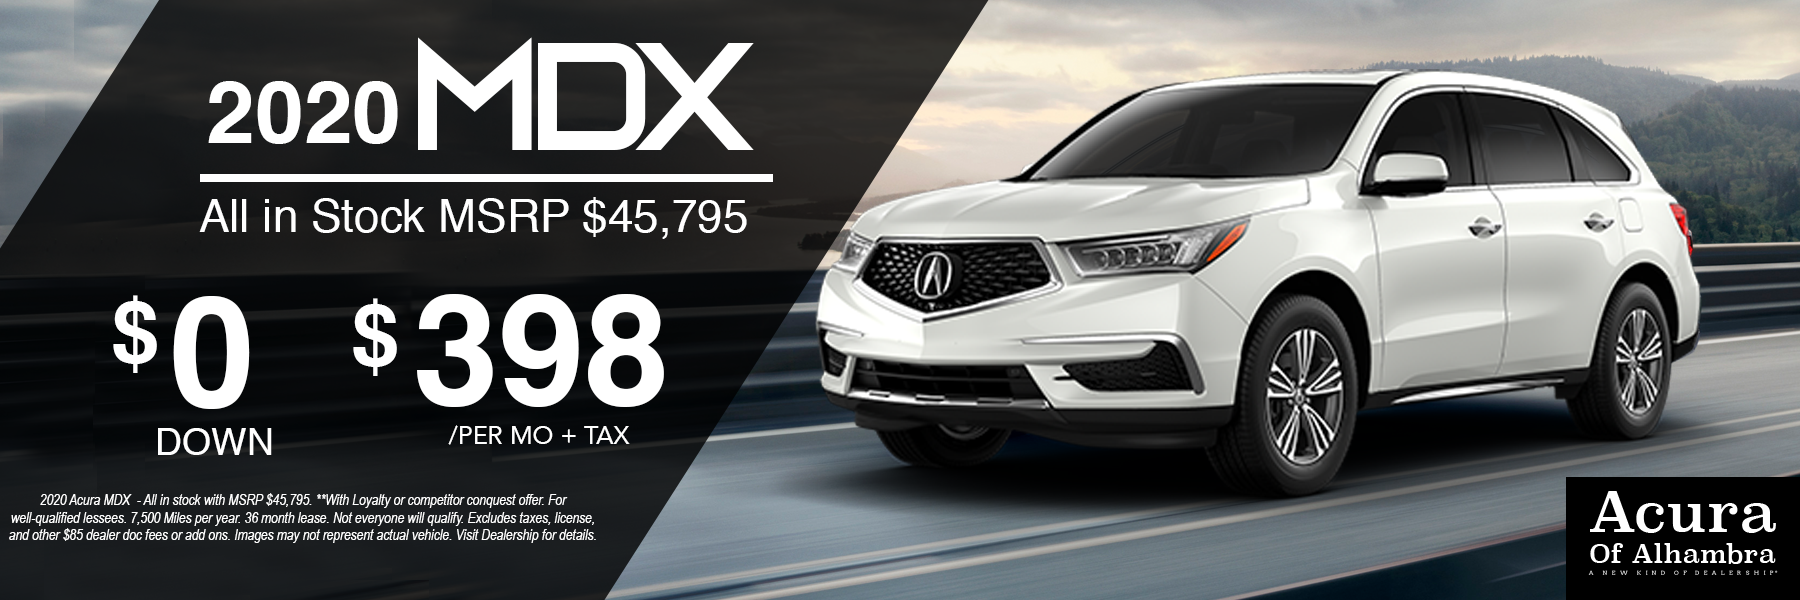 White Acura MDX Vehicle for $398 Per Month + Tax